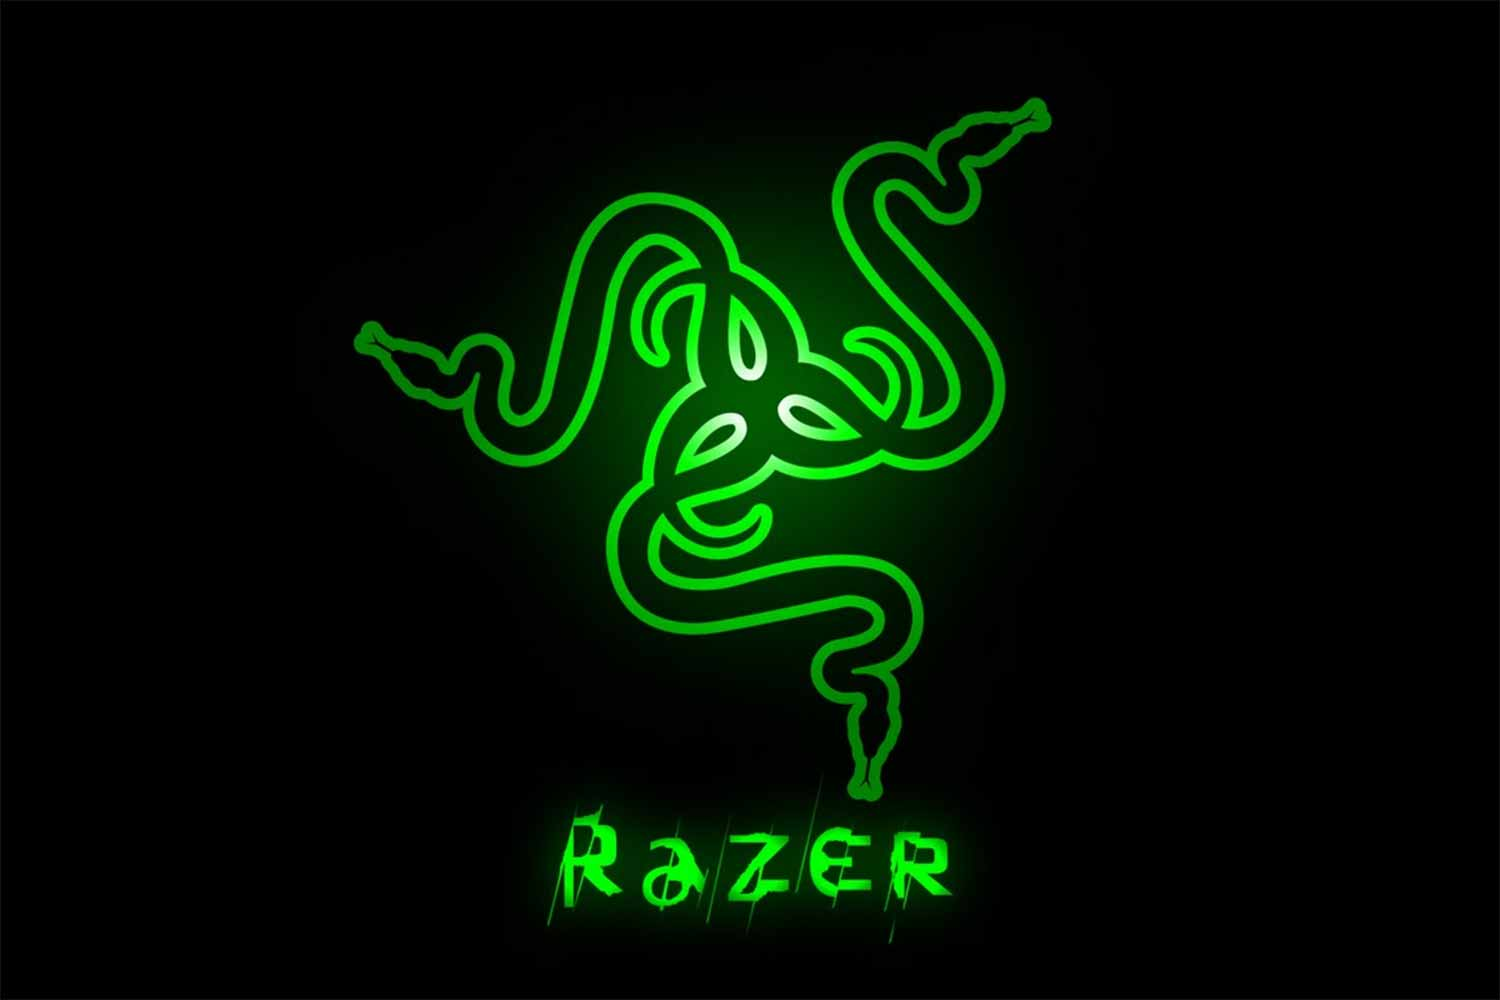 Razer Acquires Ouya, Keeps Name but Drops Hardware